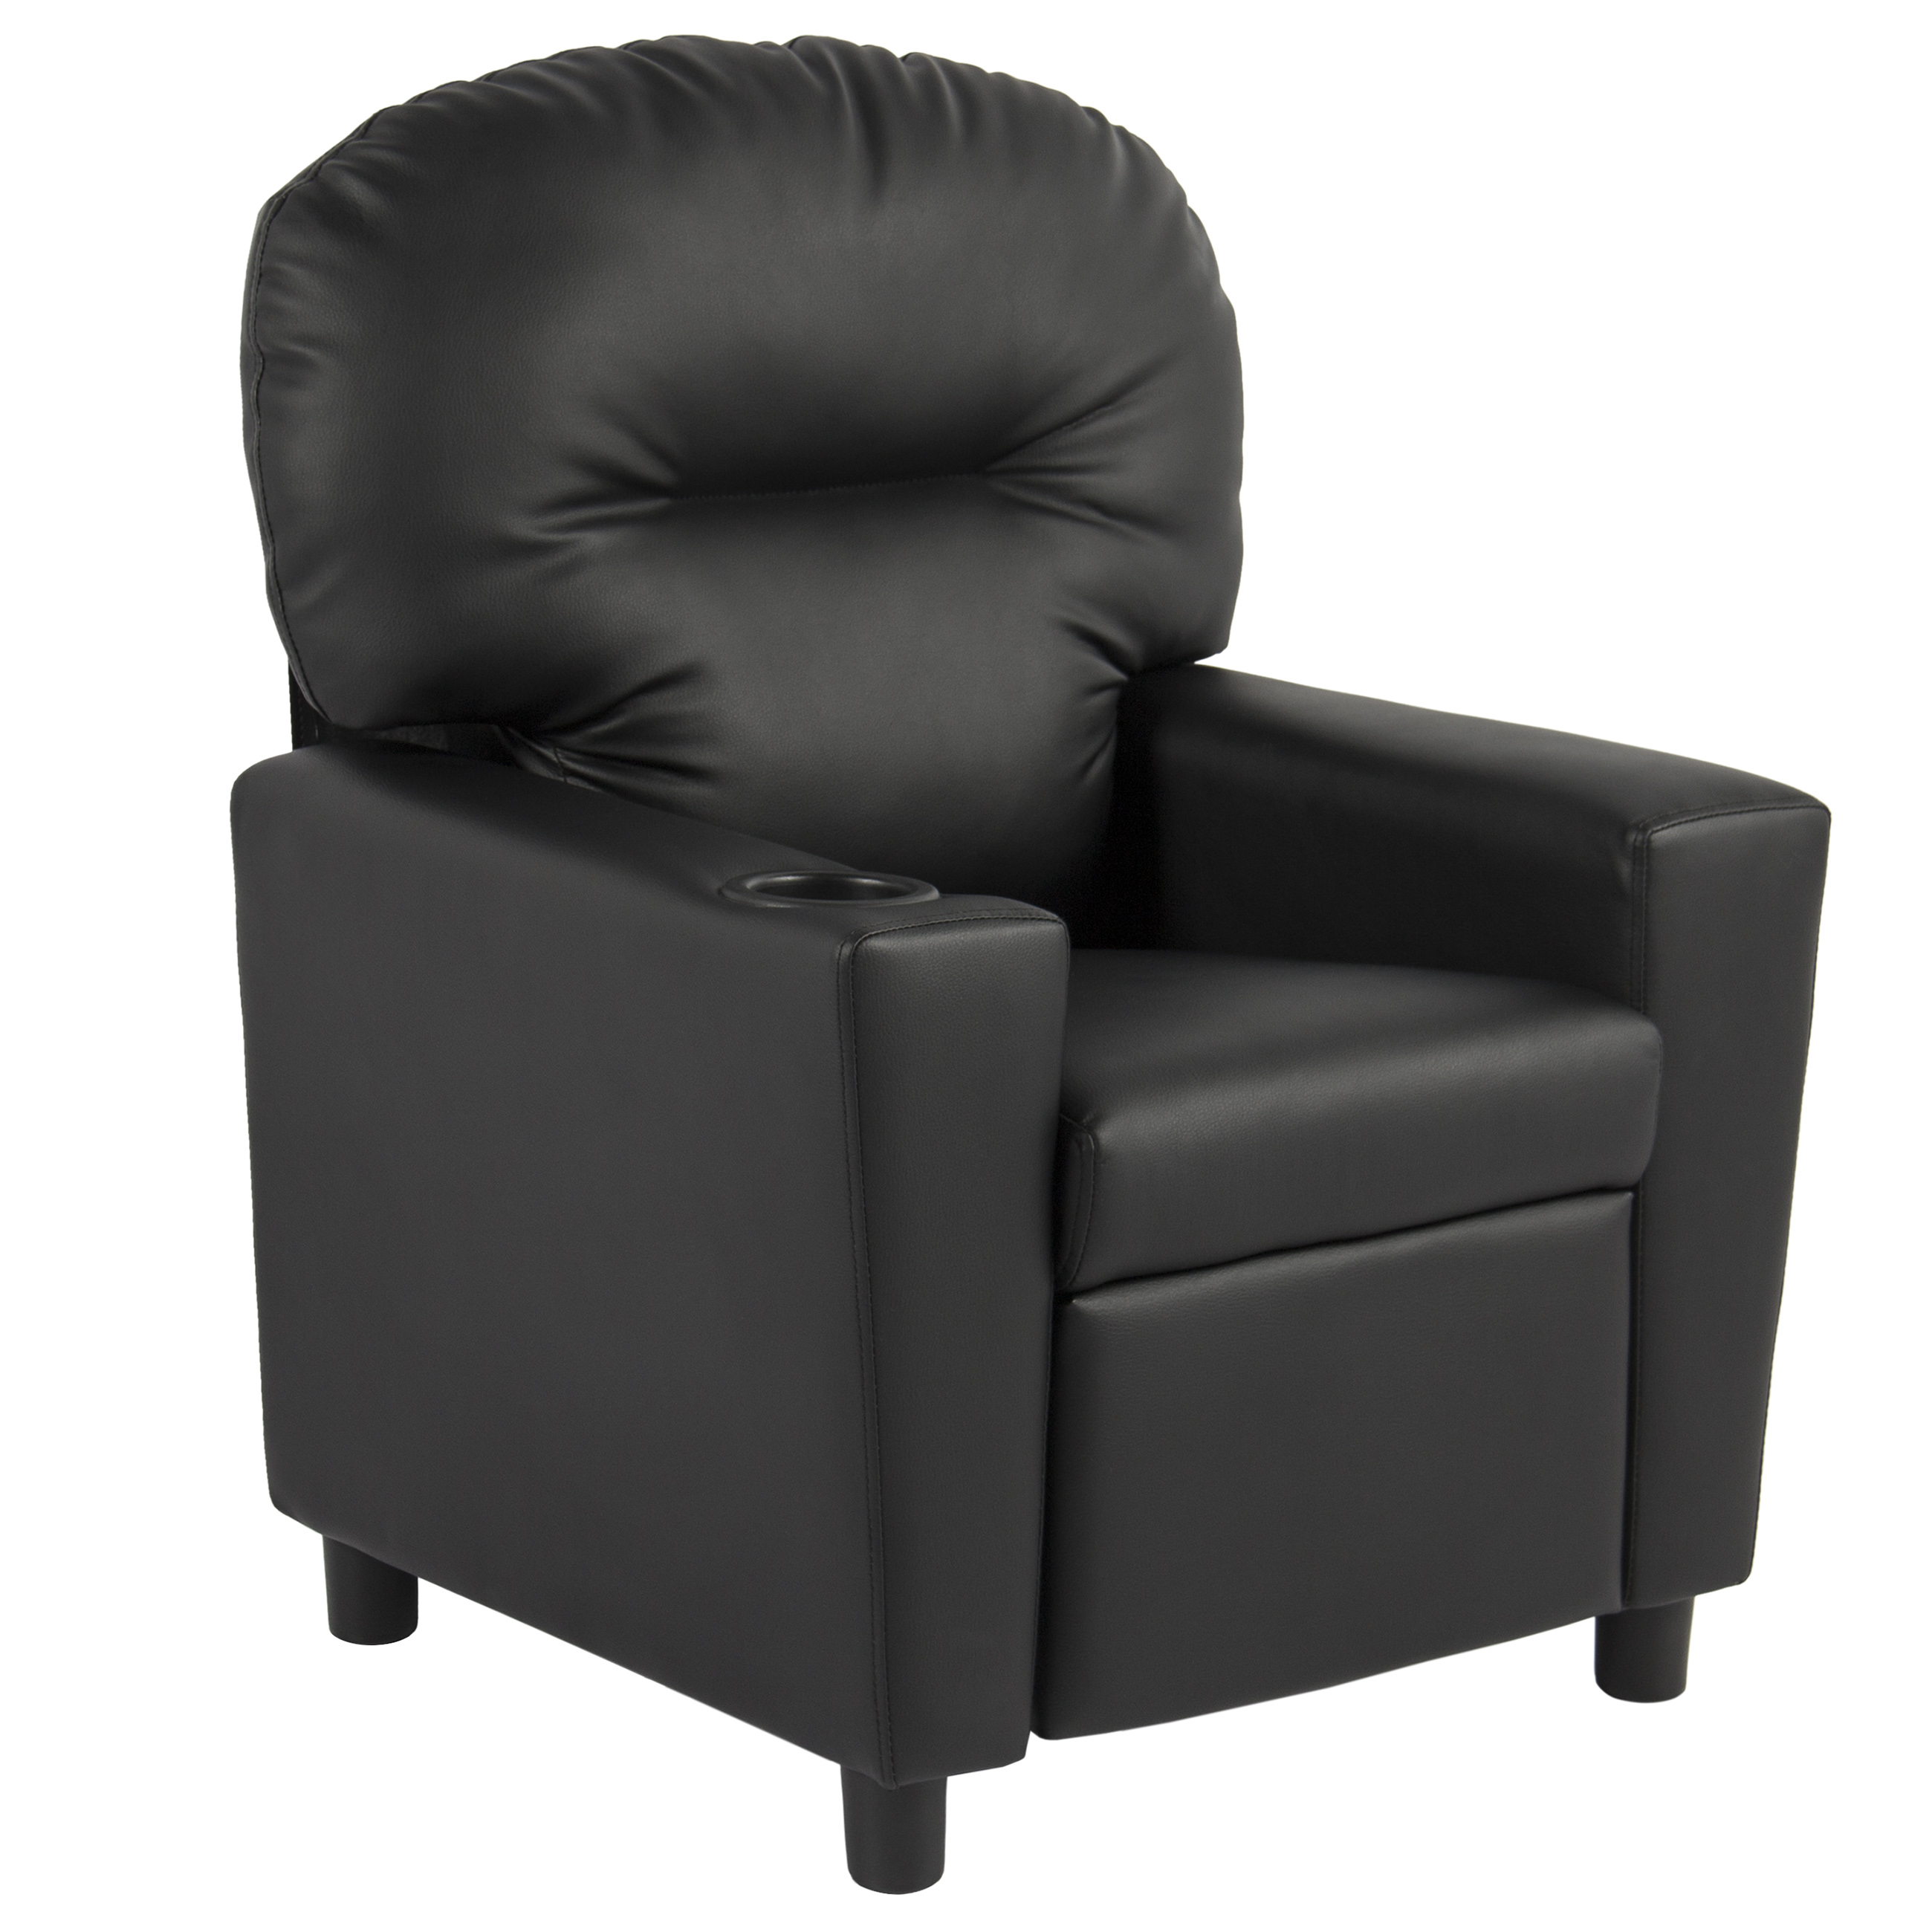 Best Choice Products Black Leather Kids Recliner Chair with Cup Holder -  Traveller Location